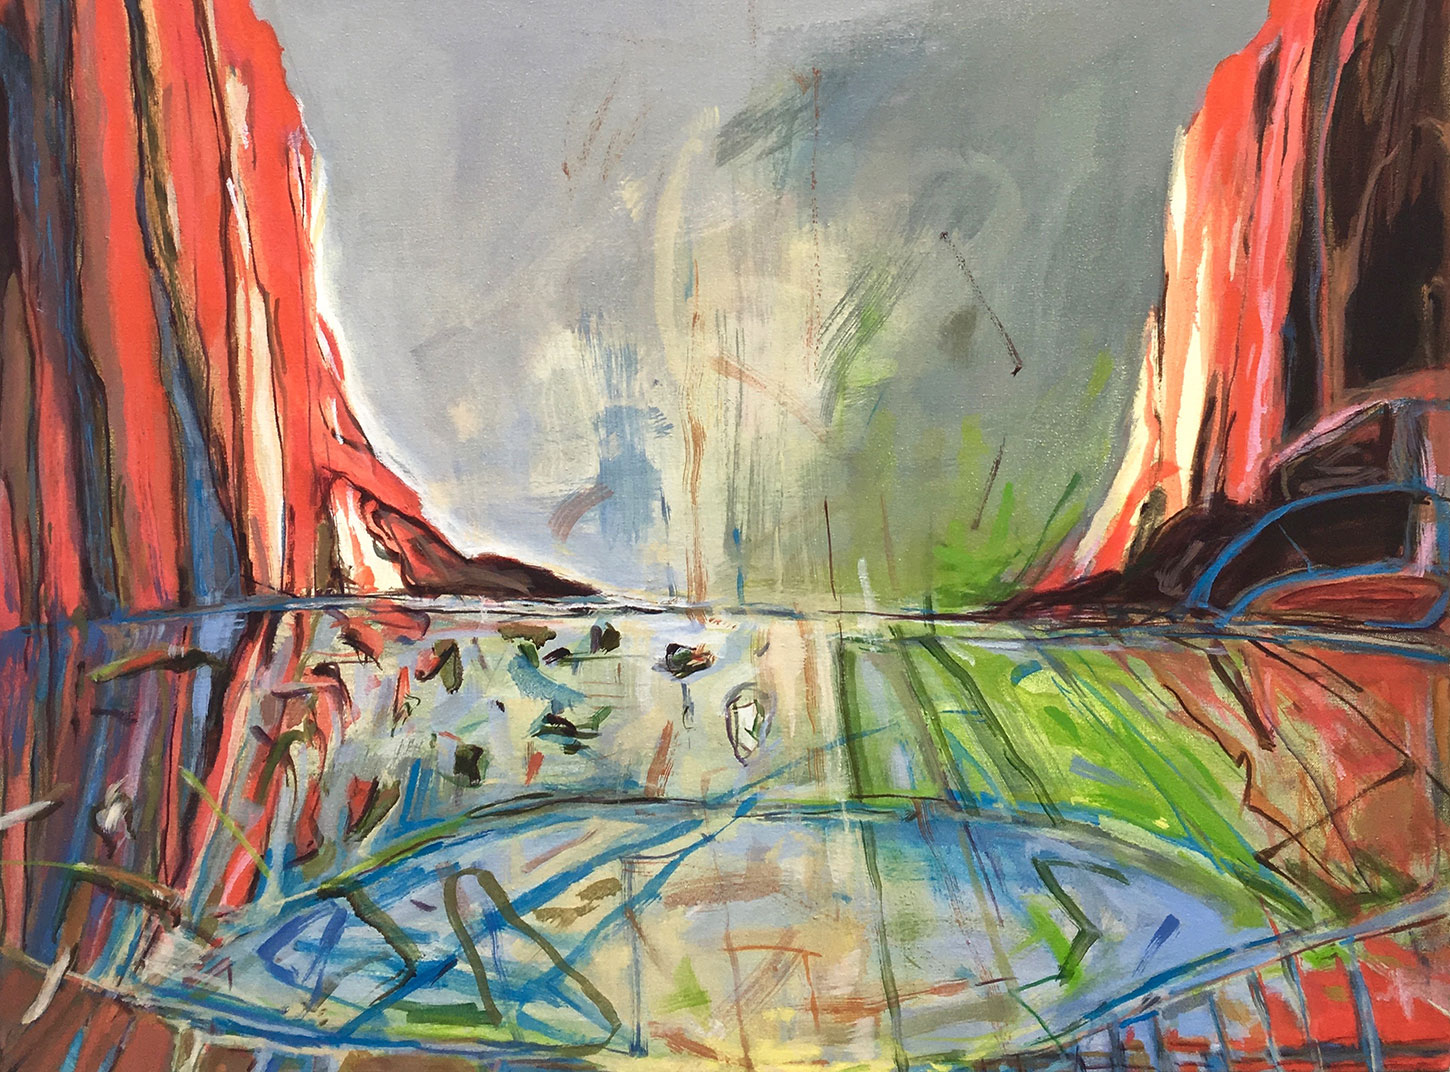 Dams, Heroic and Doomed: Paintings by Judith Belzer